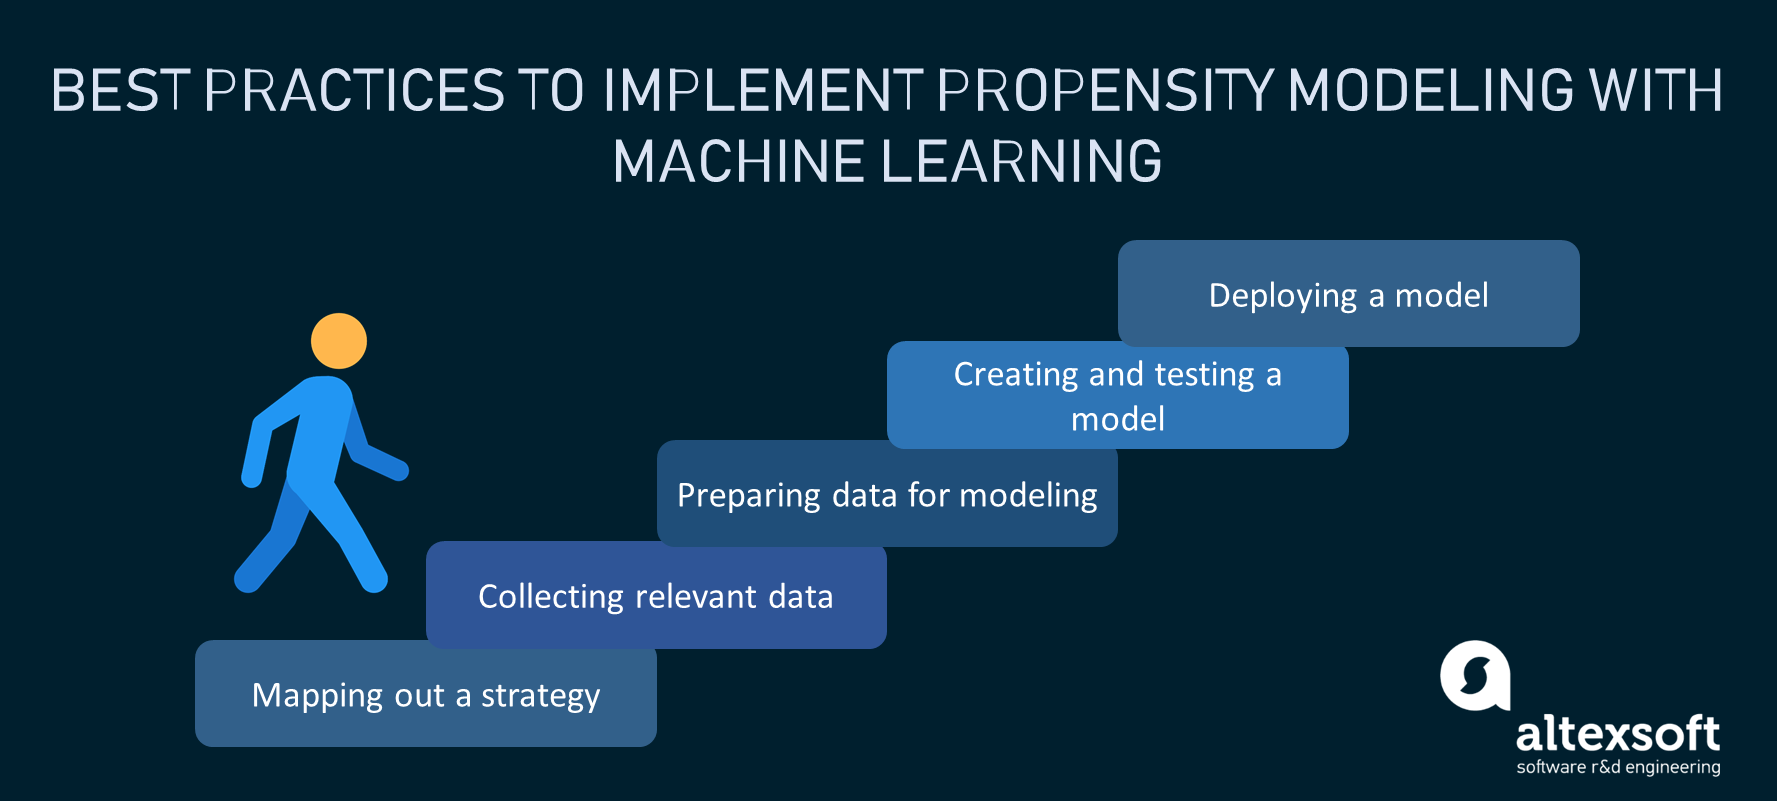 Steps to implement a propensity model with machine learning